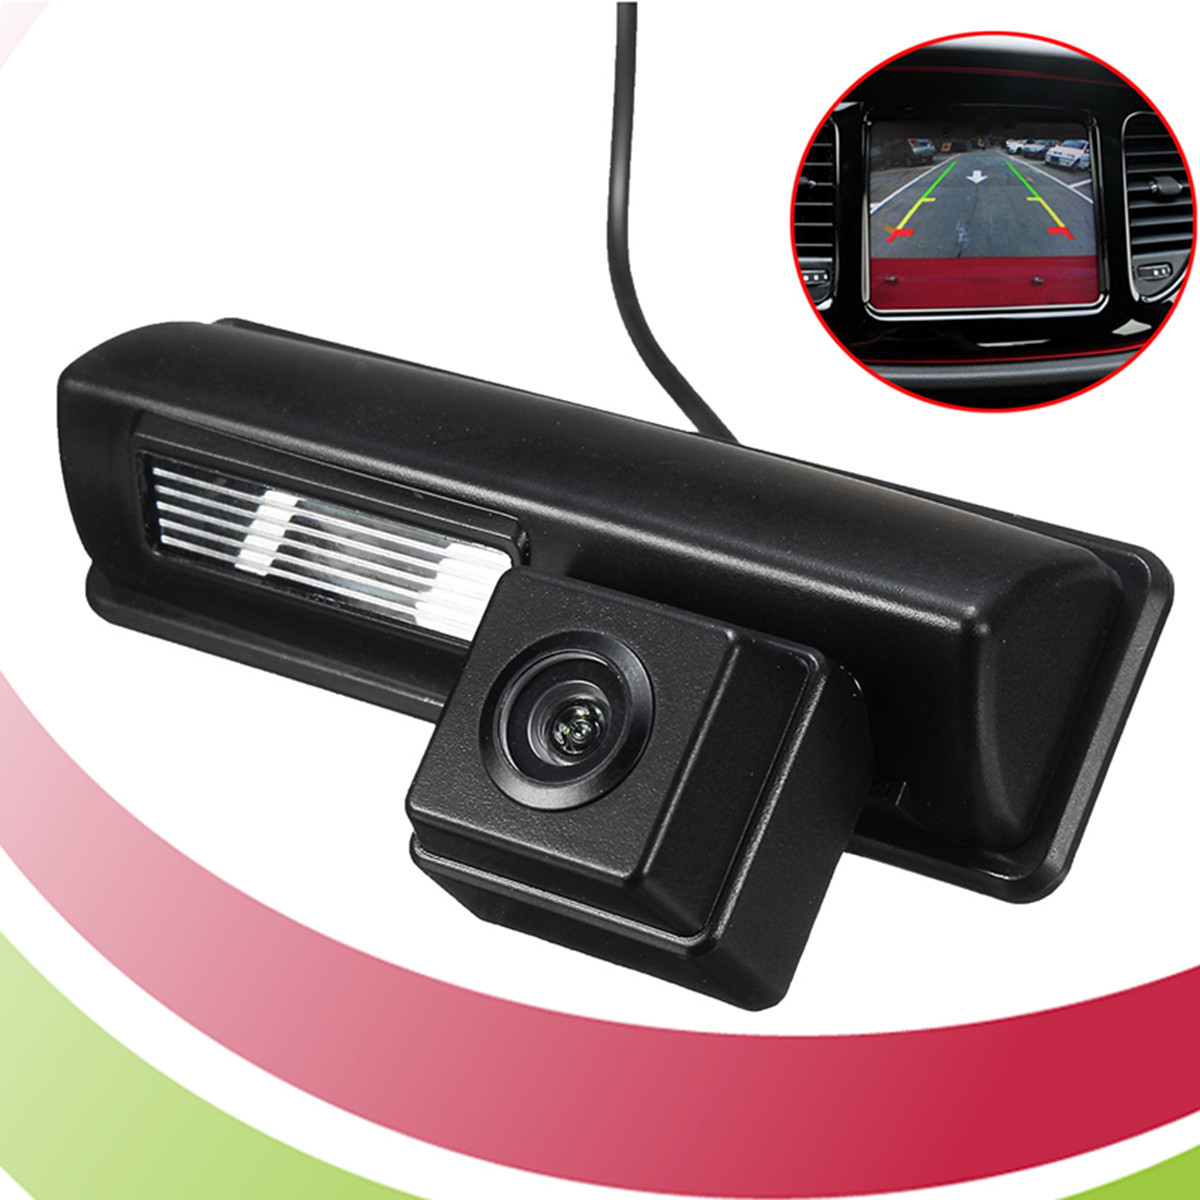 Color CCD HD Camera Fit For Toyota 2007 and 2012 Camry Car Rear View Camera Reverse